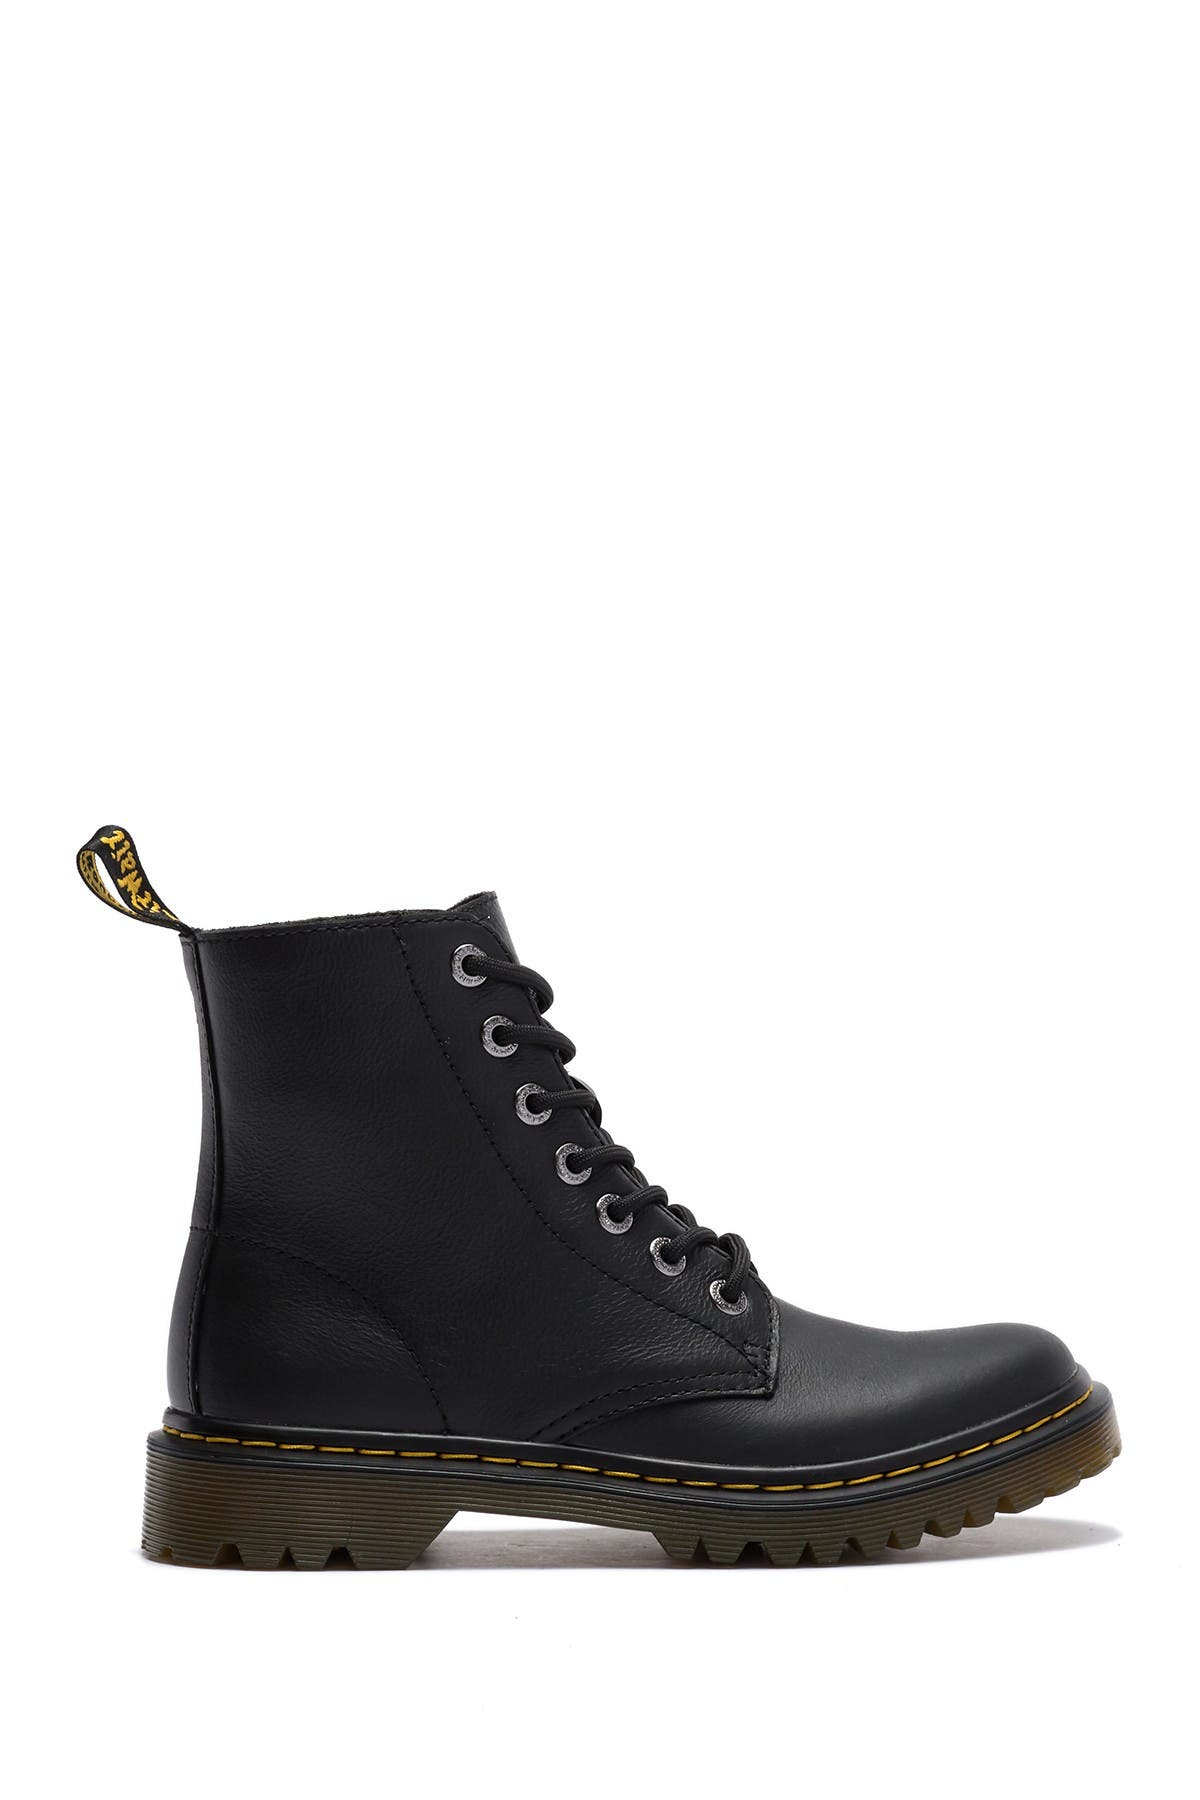 Dr. Martens | Luana Leather Combat Boot